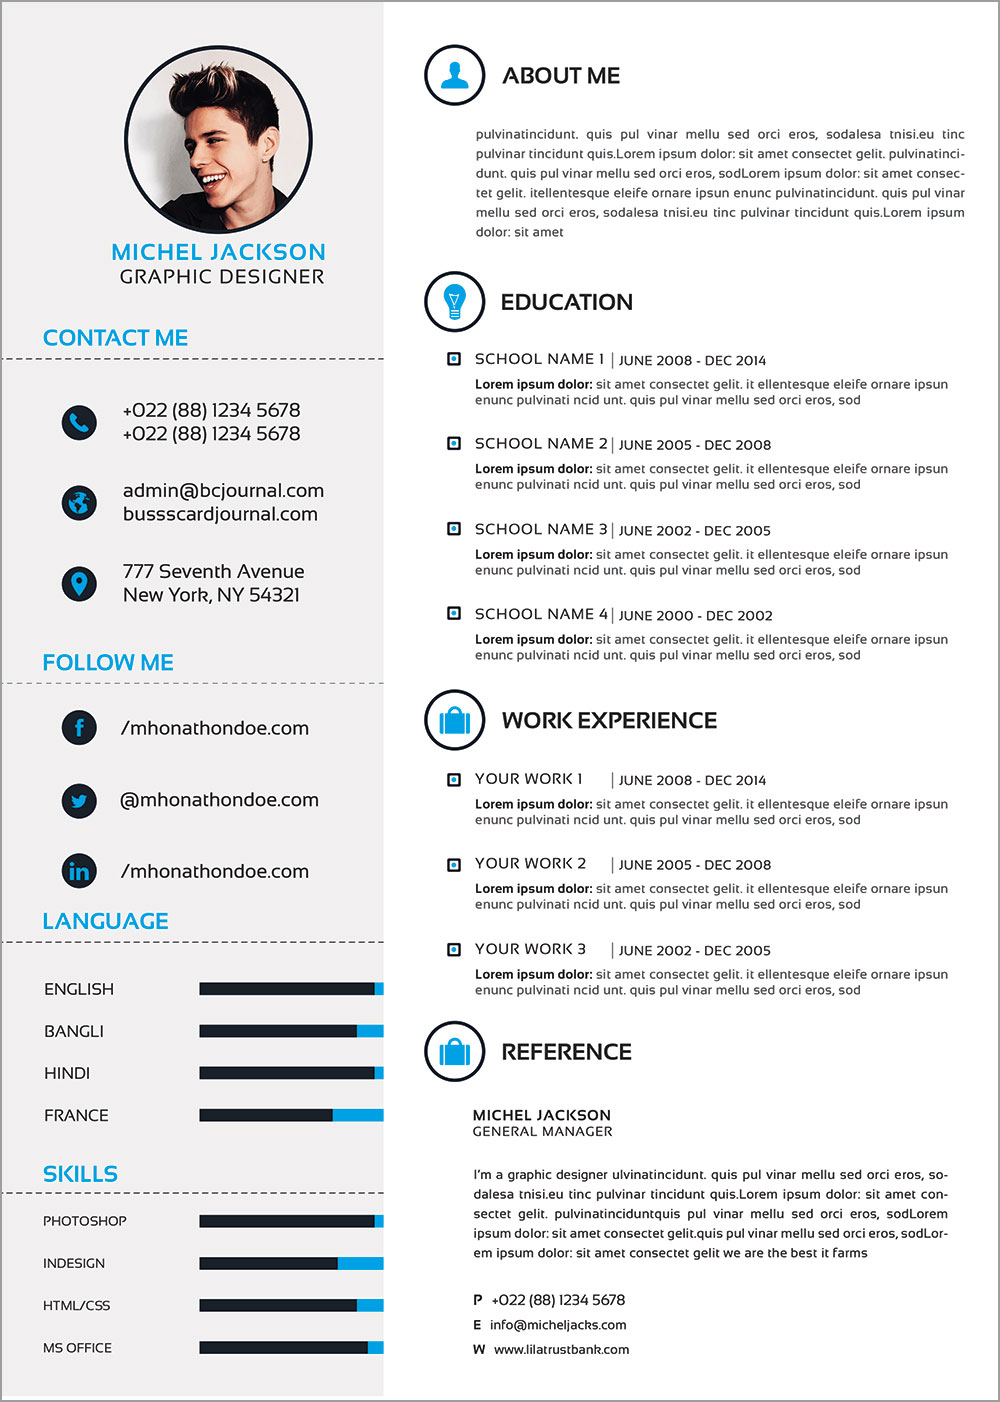 free psd cv   template  cover letter  u0026 portfolio design for graphic designers